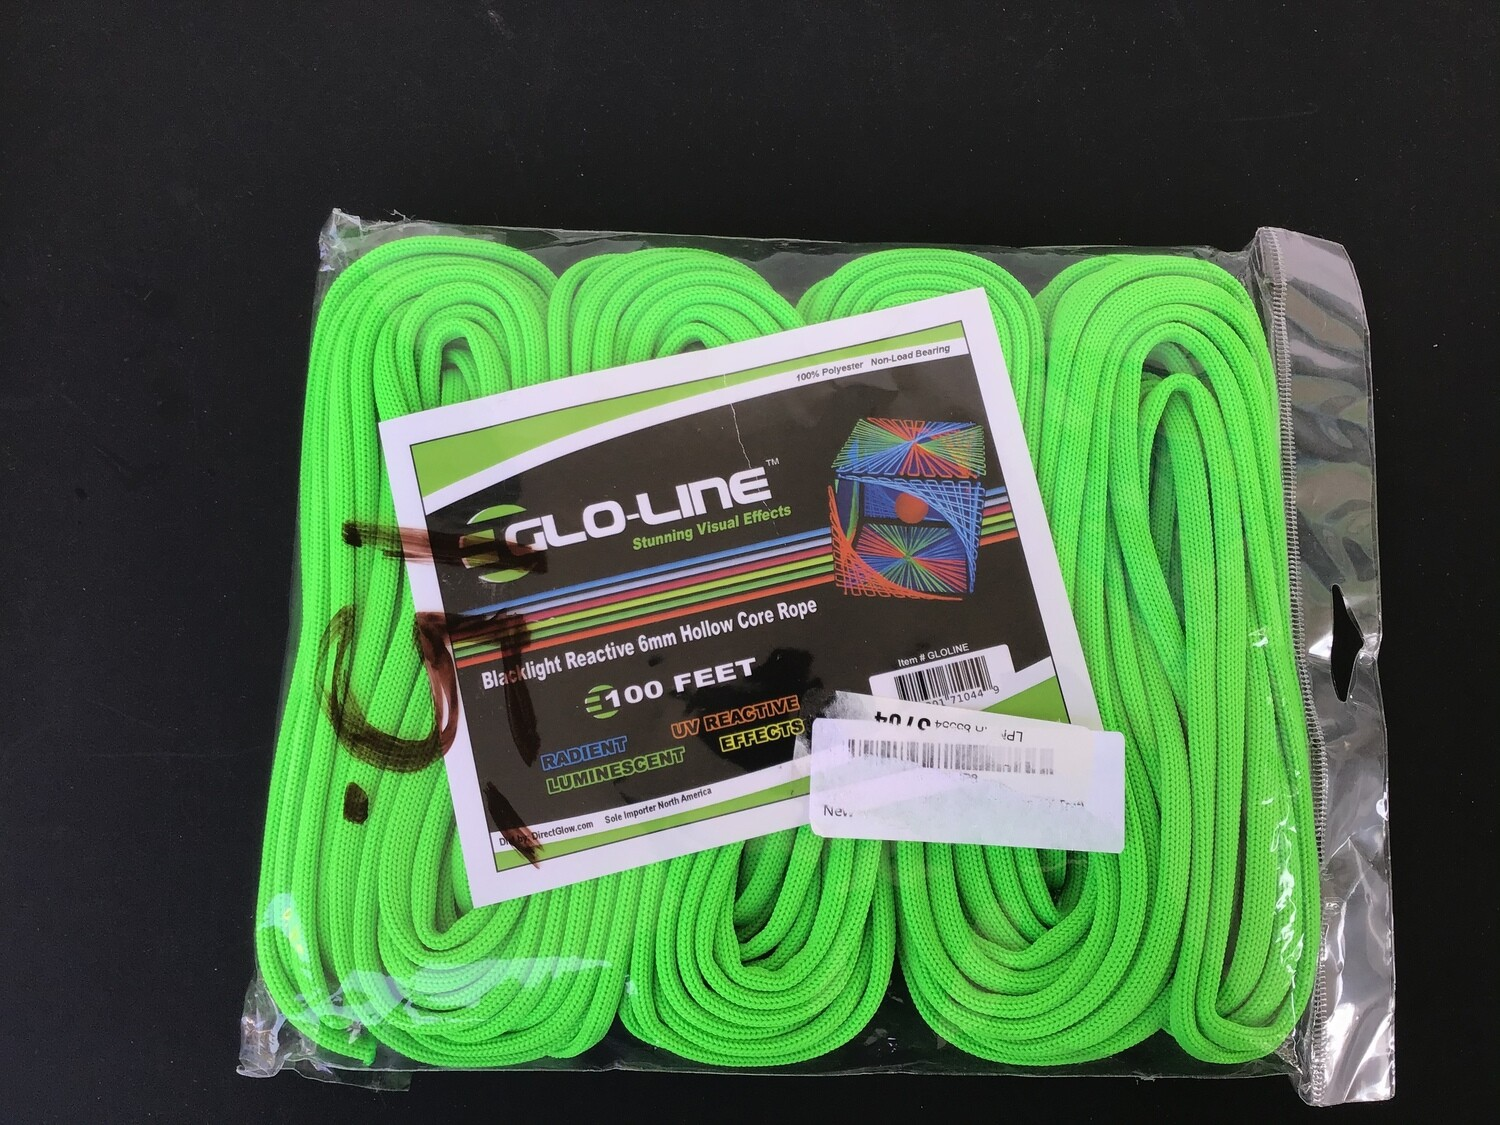 Glo-Line Rope - Green